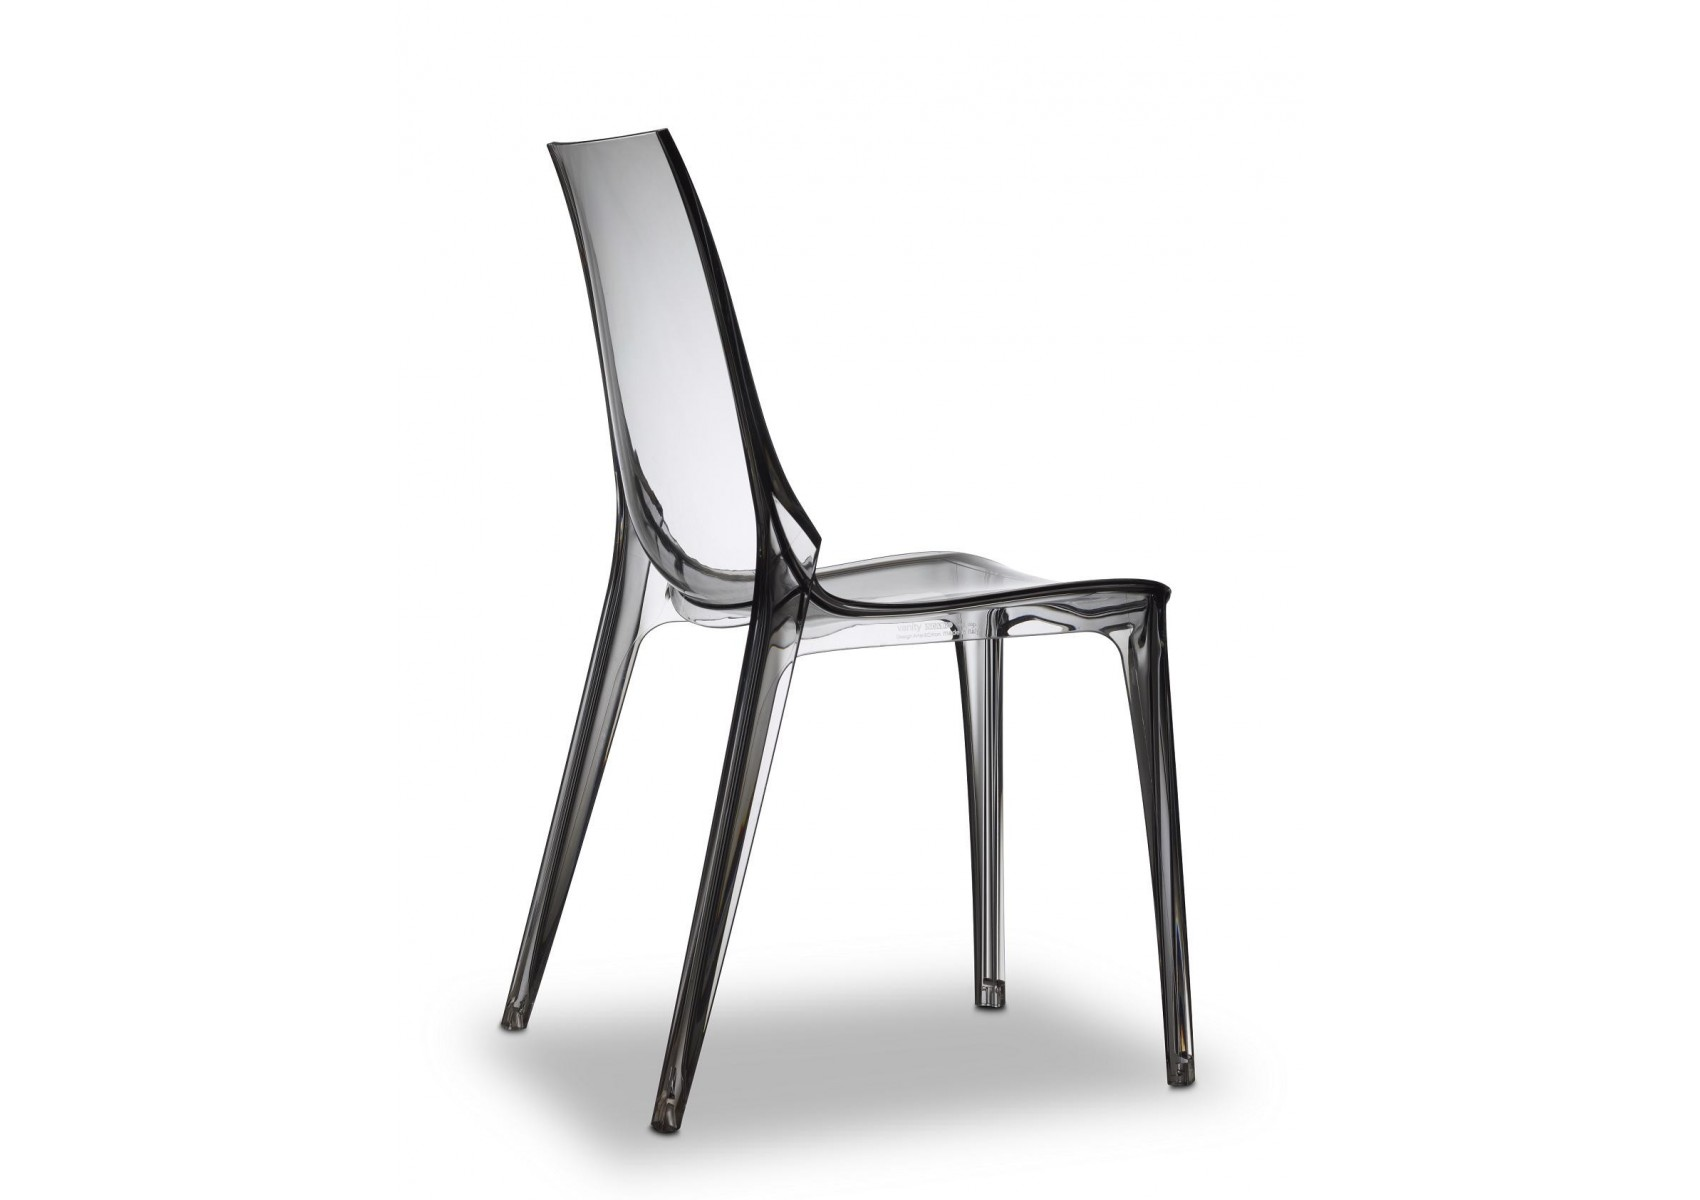 Chaise design contemporaine mod le vanity de scab for Modele de chaises design